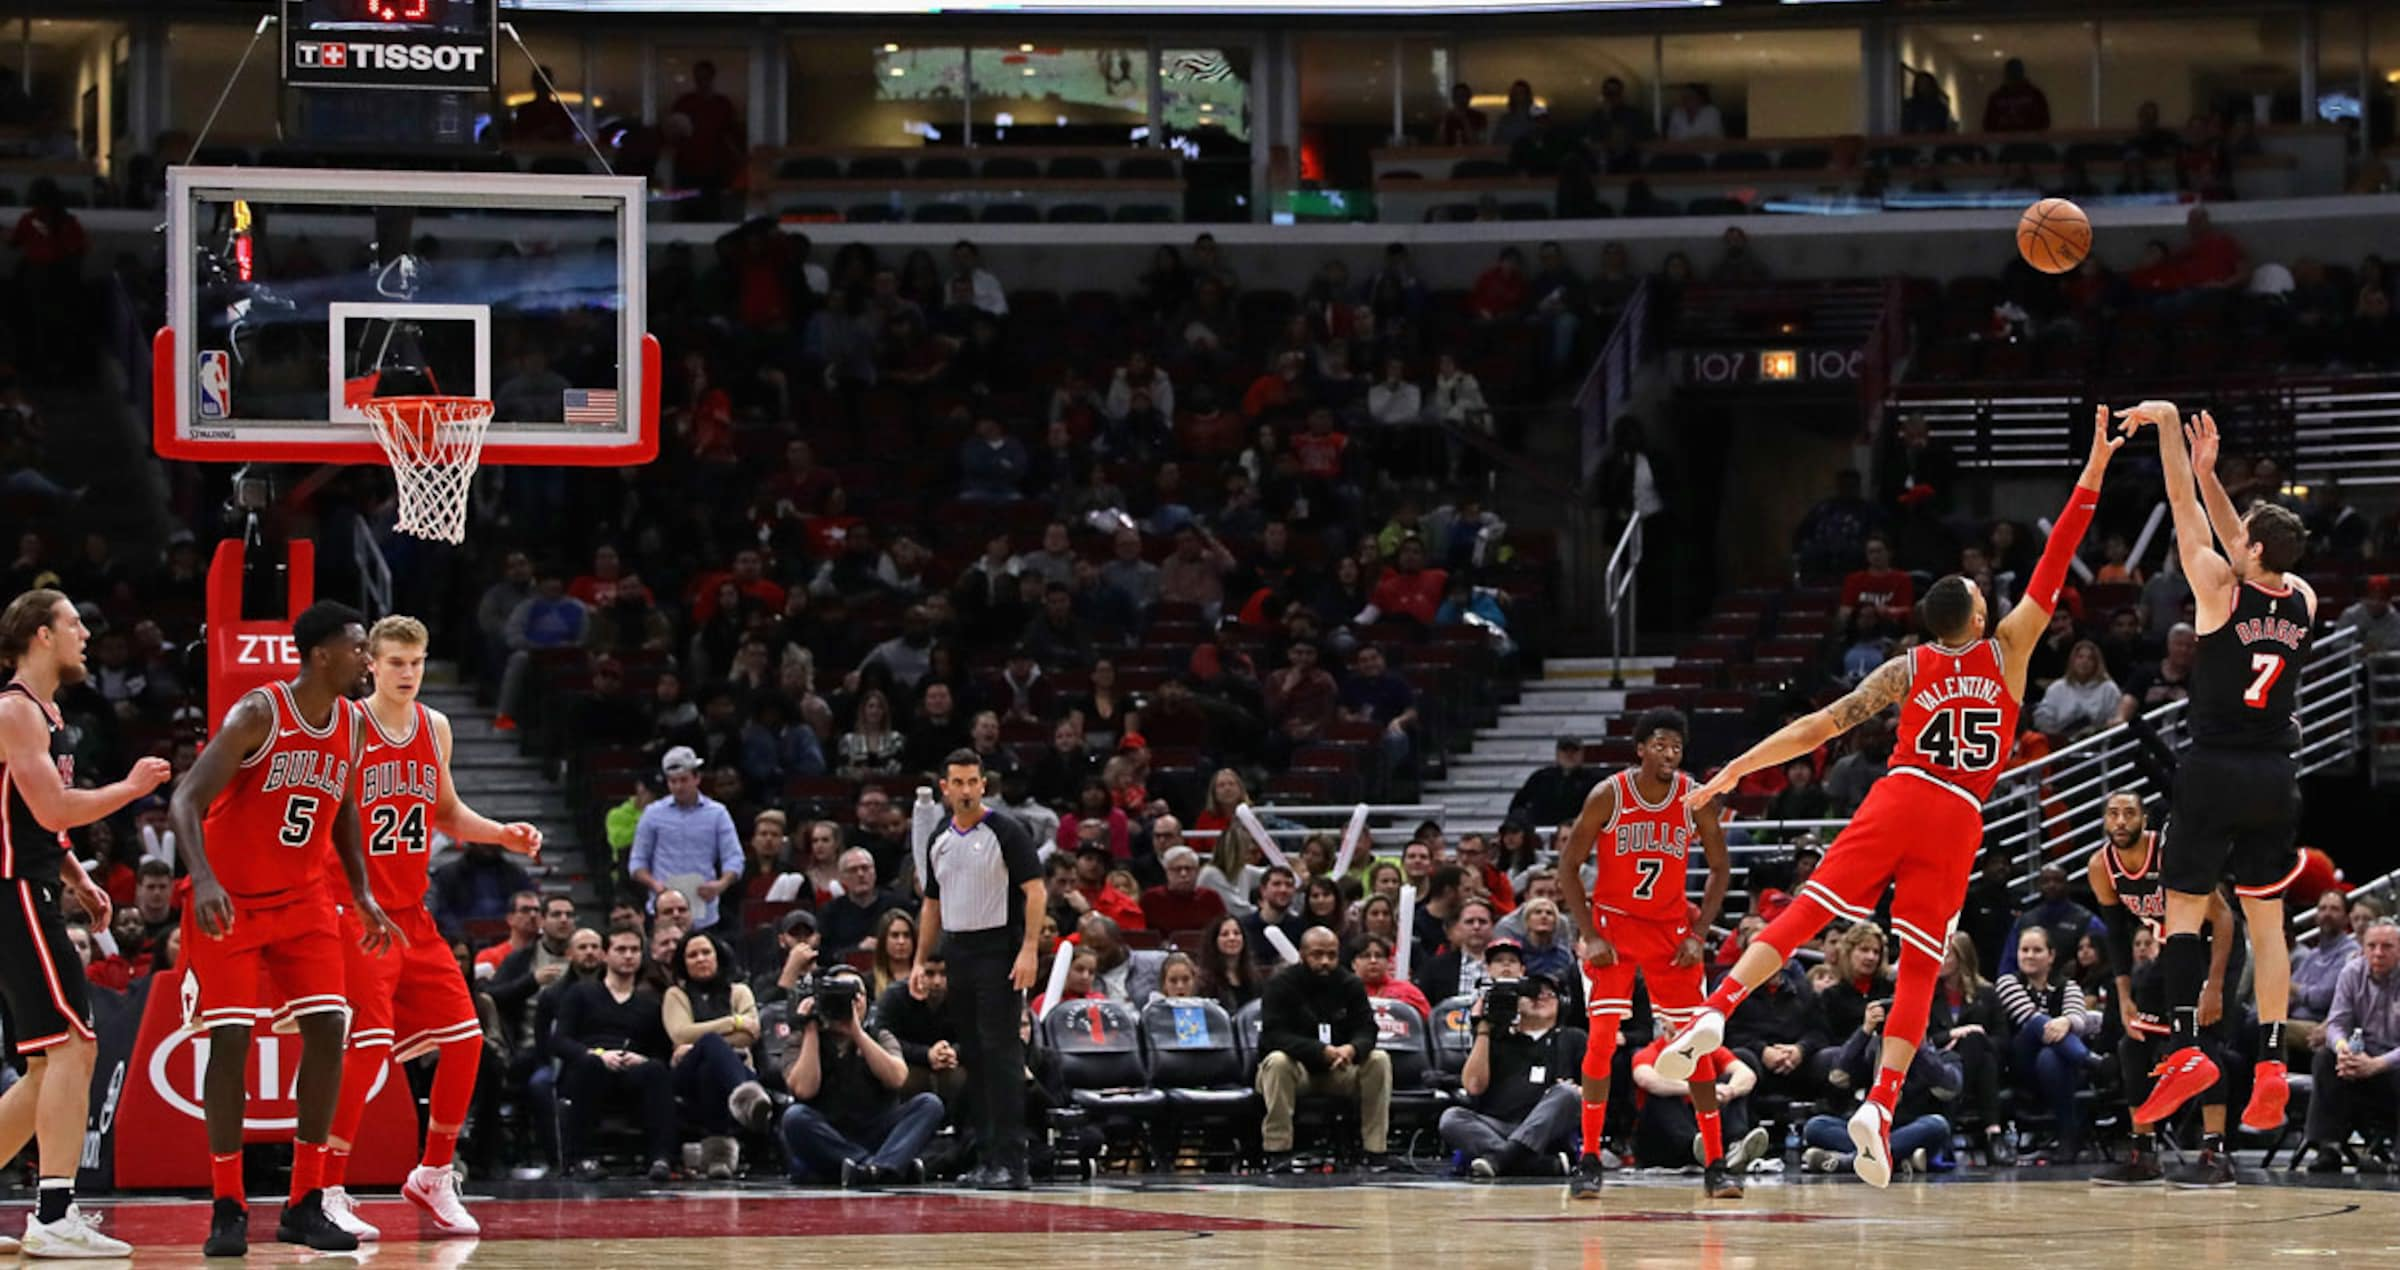 Goran Dragic #7 of the Miami Heat puts up a three point shot over Denzel Valentine #45 of the Chicago Bulls on hois way to a team-high 24 points at the United Center on November 26, 2017 in Chicago, Illinois.